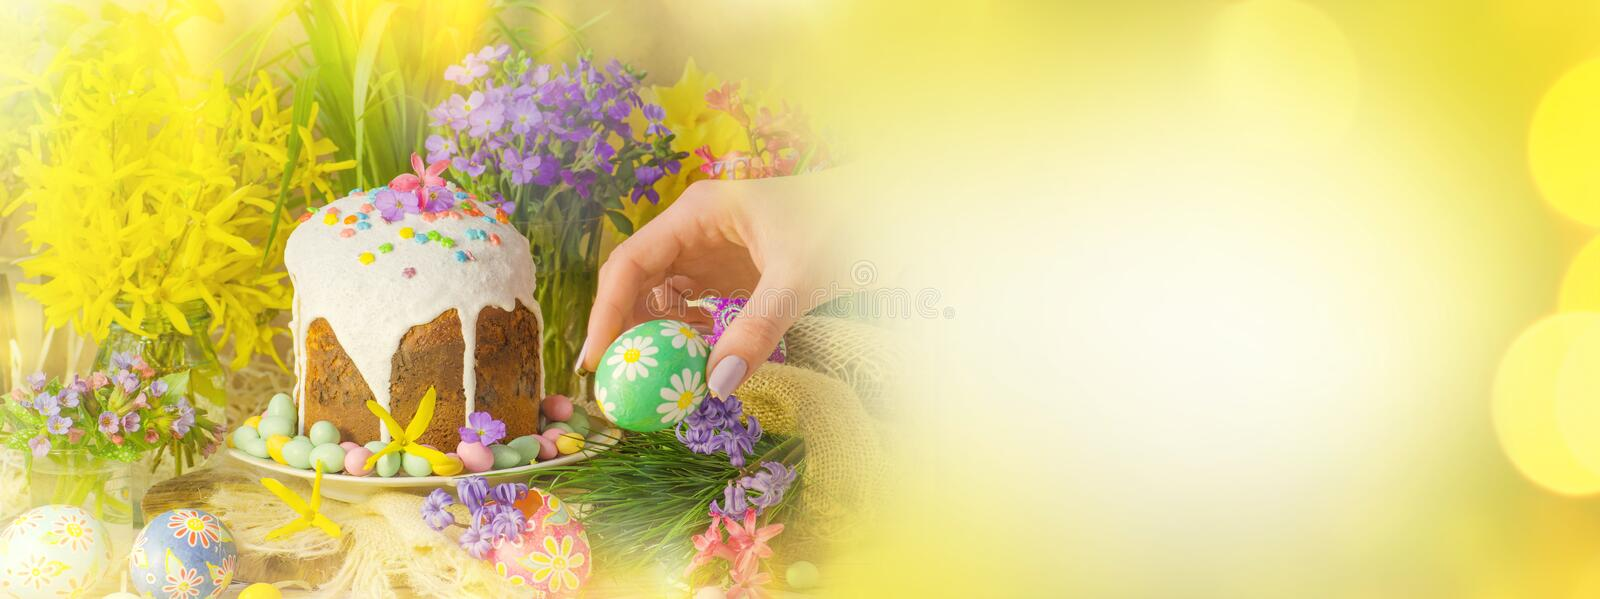 Spring flower banner background with Easter eggs. Easter holiday creative background. View with copy space royalty free stock image